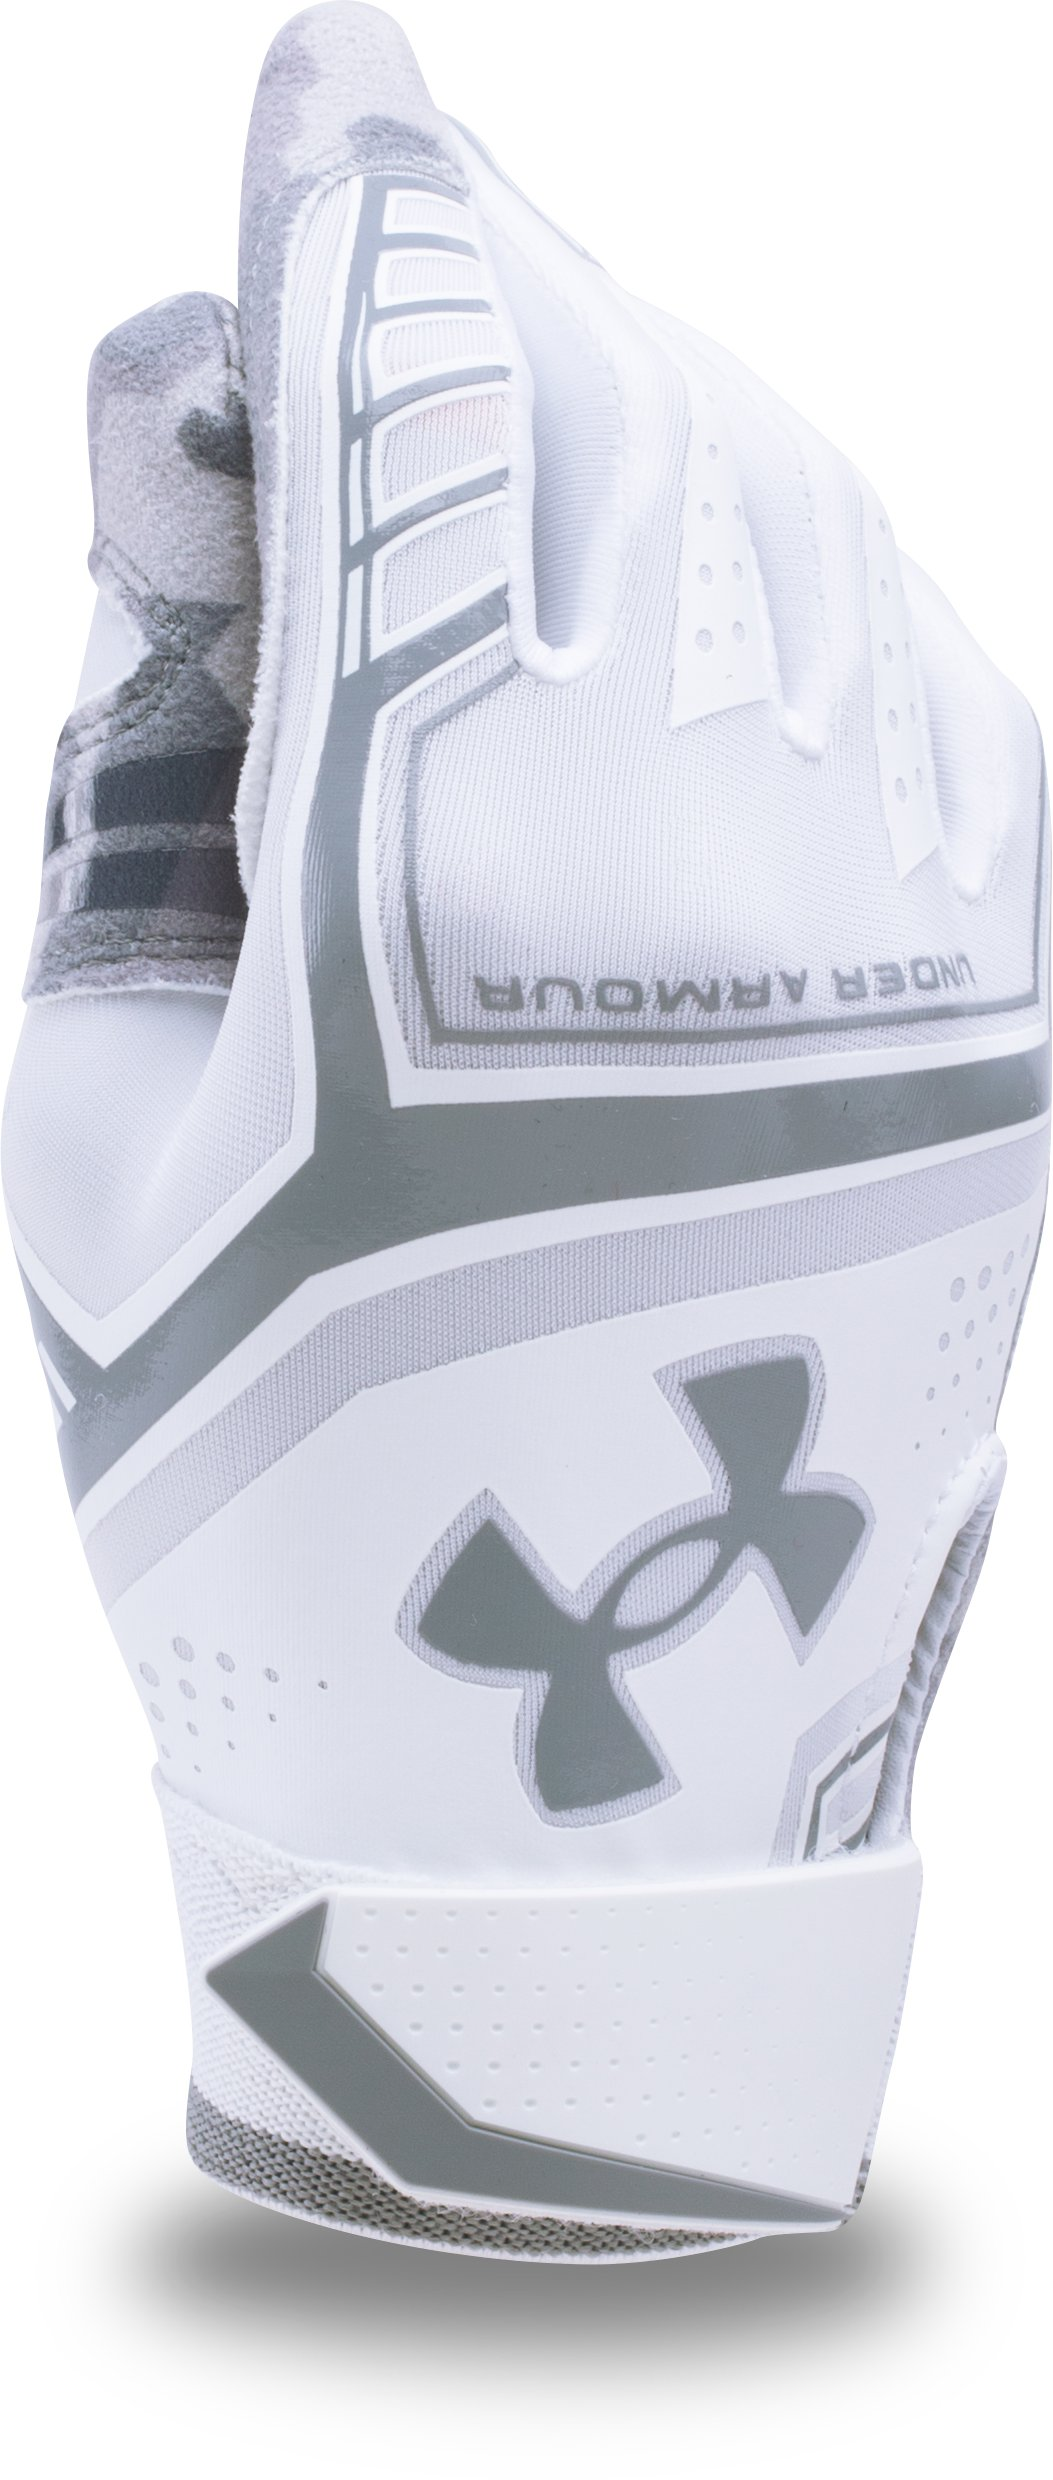 Boys' UA Heater Batting Gloves, White, undefined